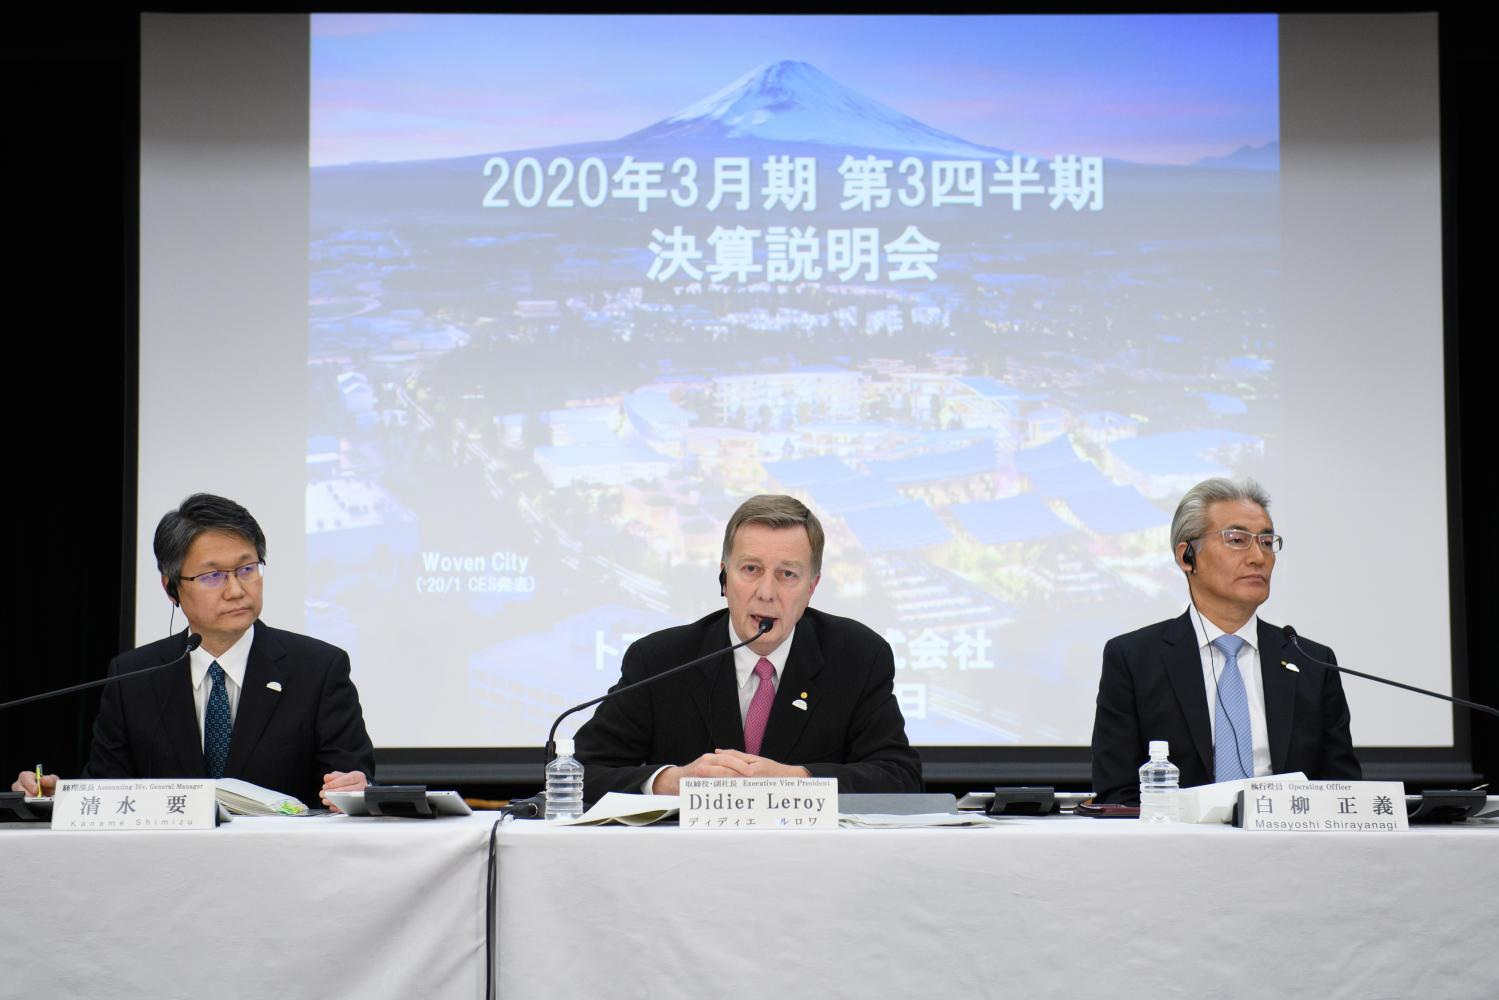 Didier Leroy, executive vice president of Toyota Motor Corp, centre, speaks as Masayoshi Shirayanagi, operating officer, right, and Kaname Shimizu, general manager of the accounting division, listen during a news conference in Tokyo on Thursday.  (Bloomberg photo)